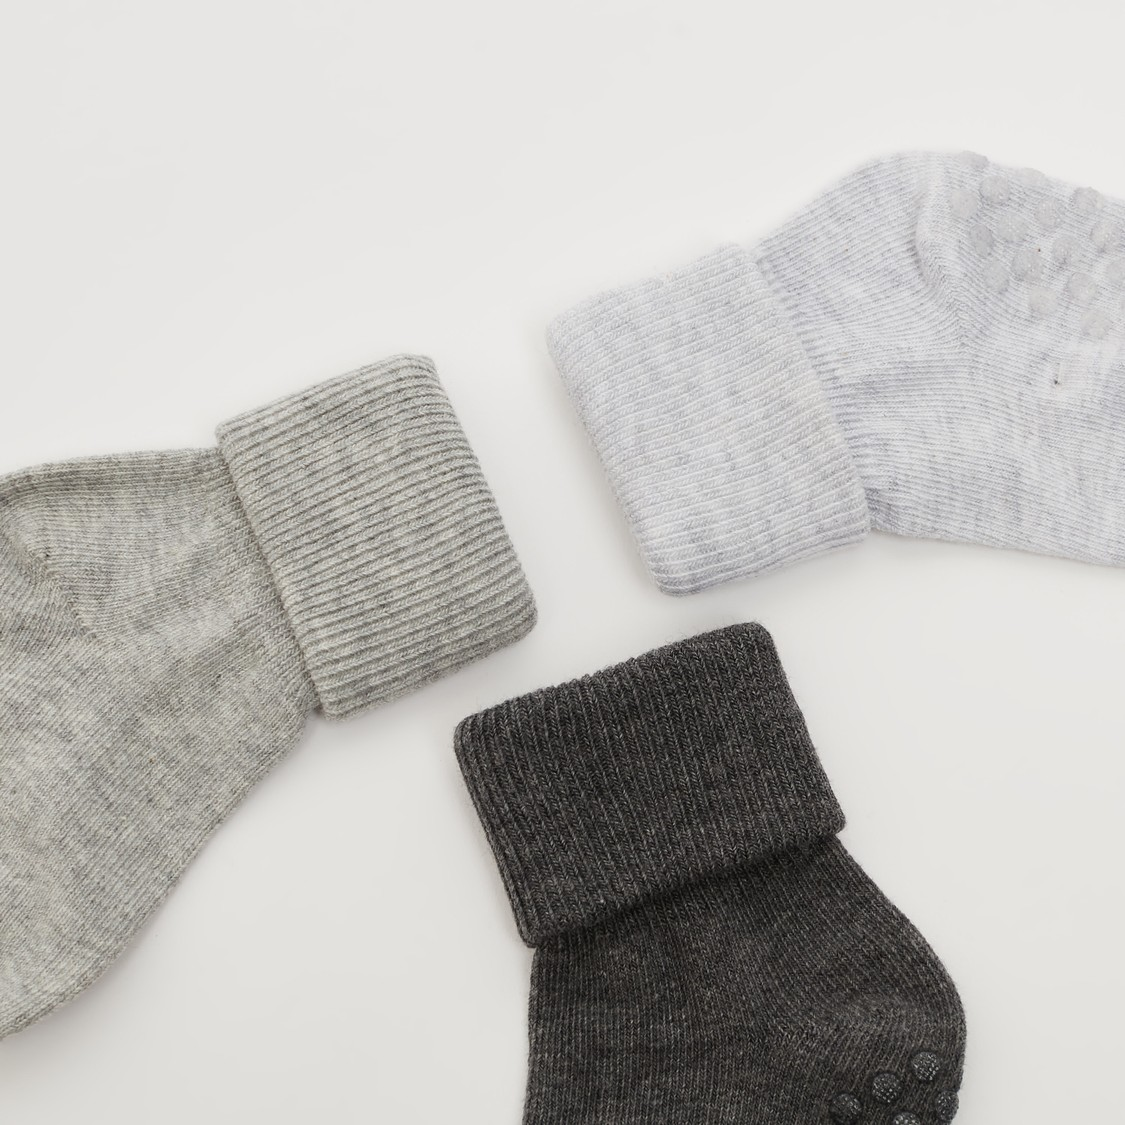 Pack of 3 - Textured Ankle Length Socks with Cuffed Hem